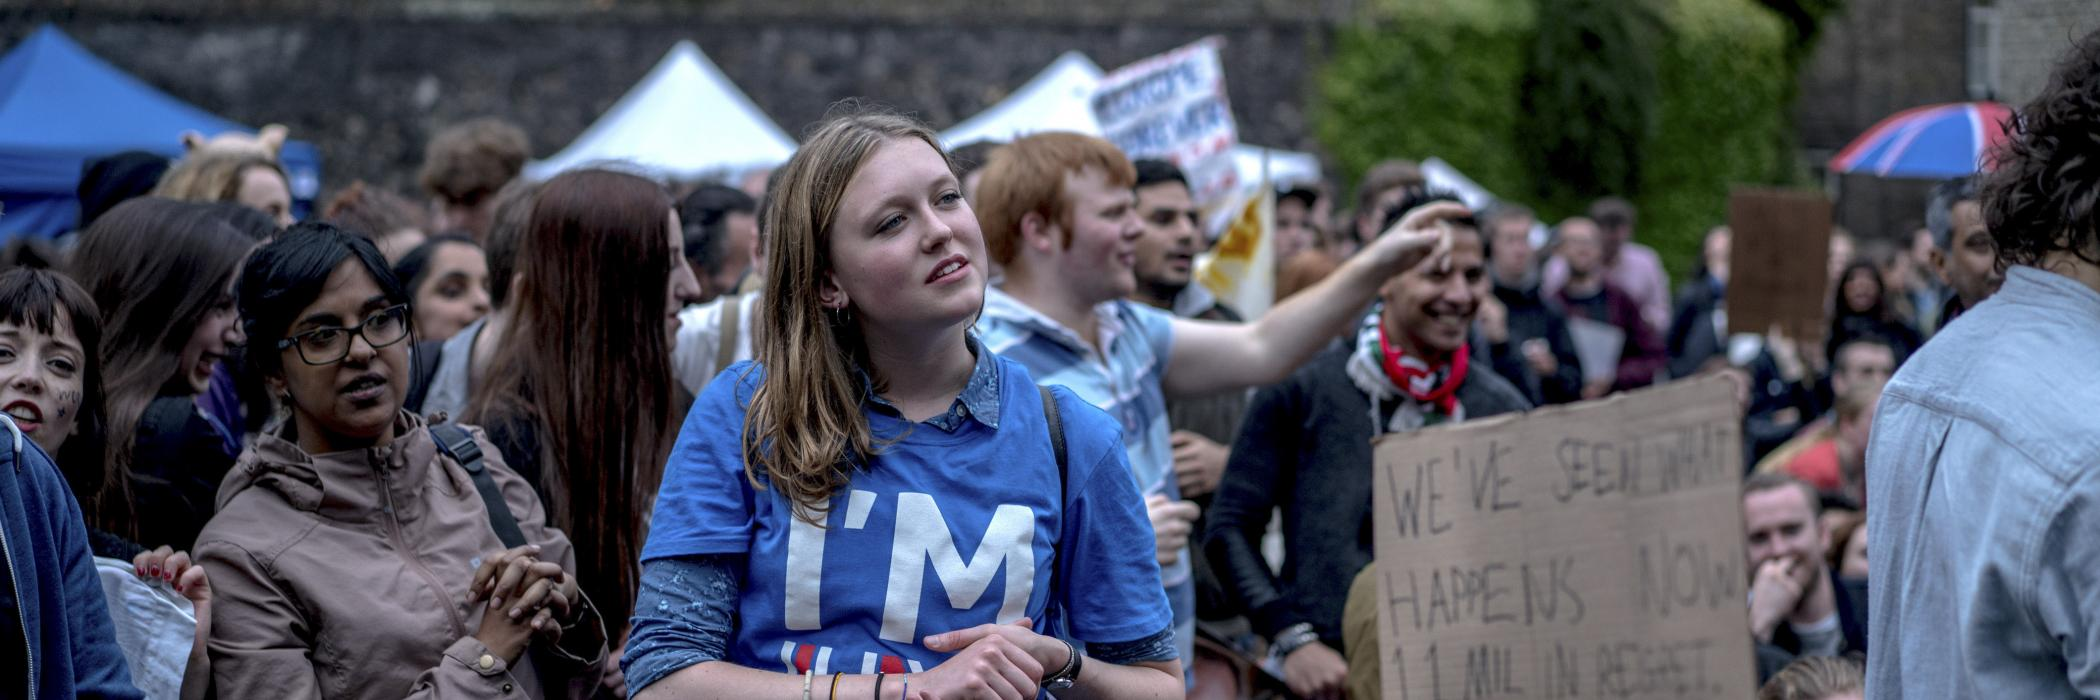 """Vote again"": disappointed Britons demonstrate for a new referendum following the Brexit vote in June 2016. The IASS studies different forms of public participation and involvement."